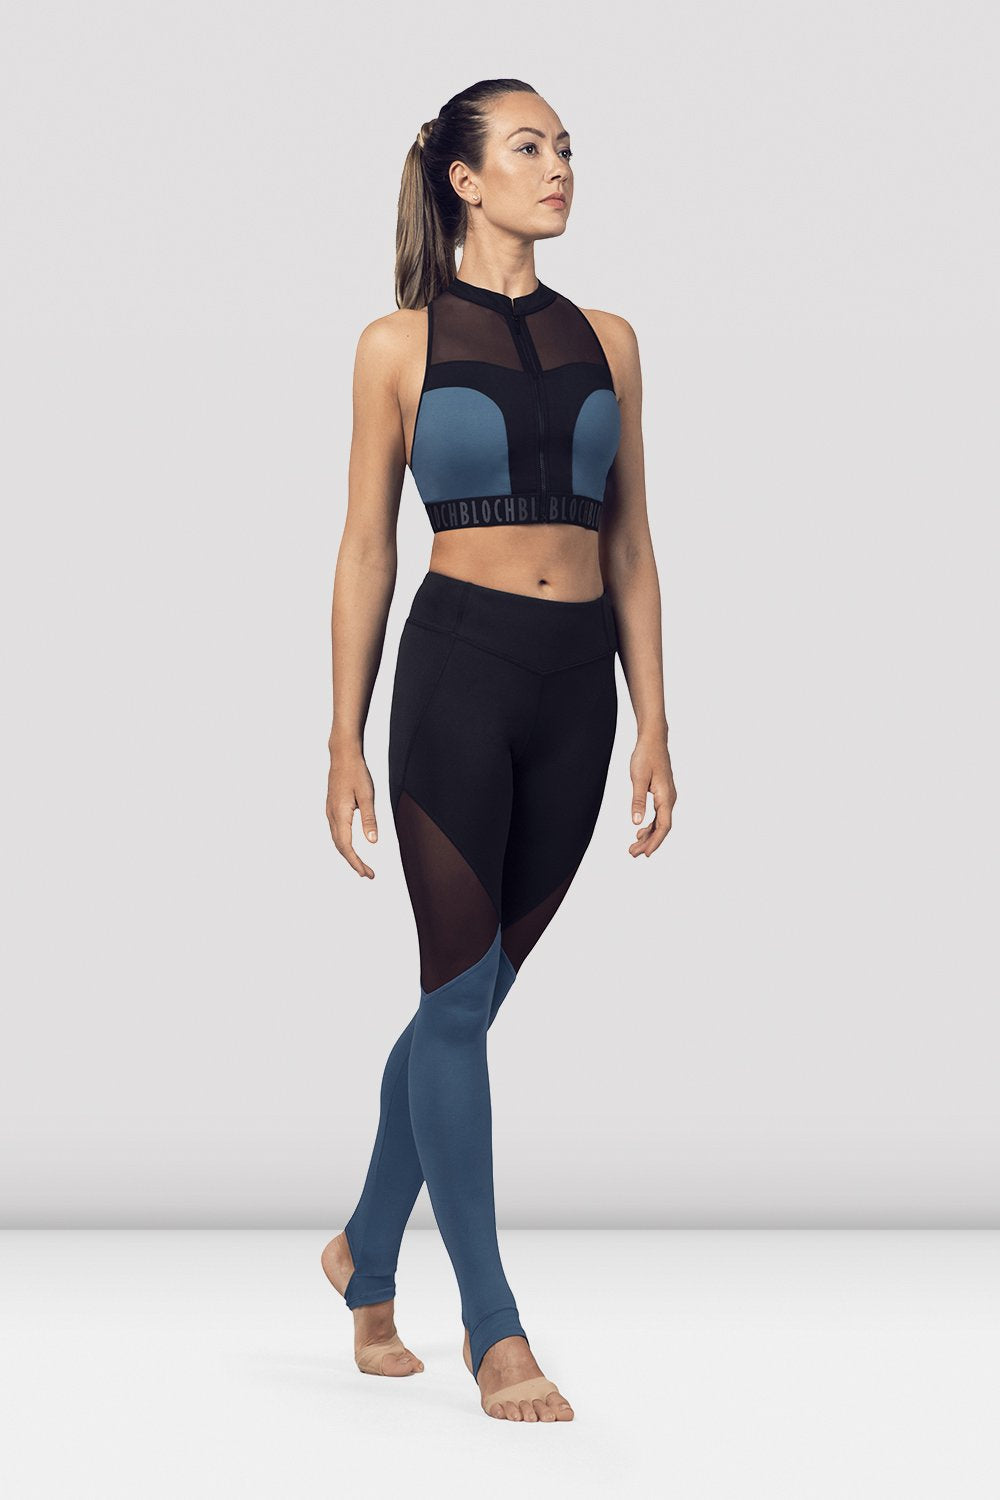 Seaport Bloch Ladies Full Length Leggings on female model in parallel fourth position on releve facing corner